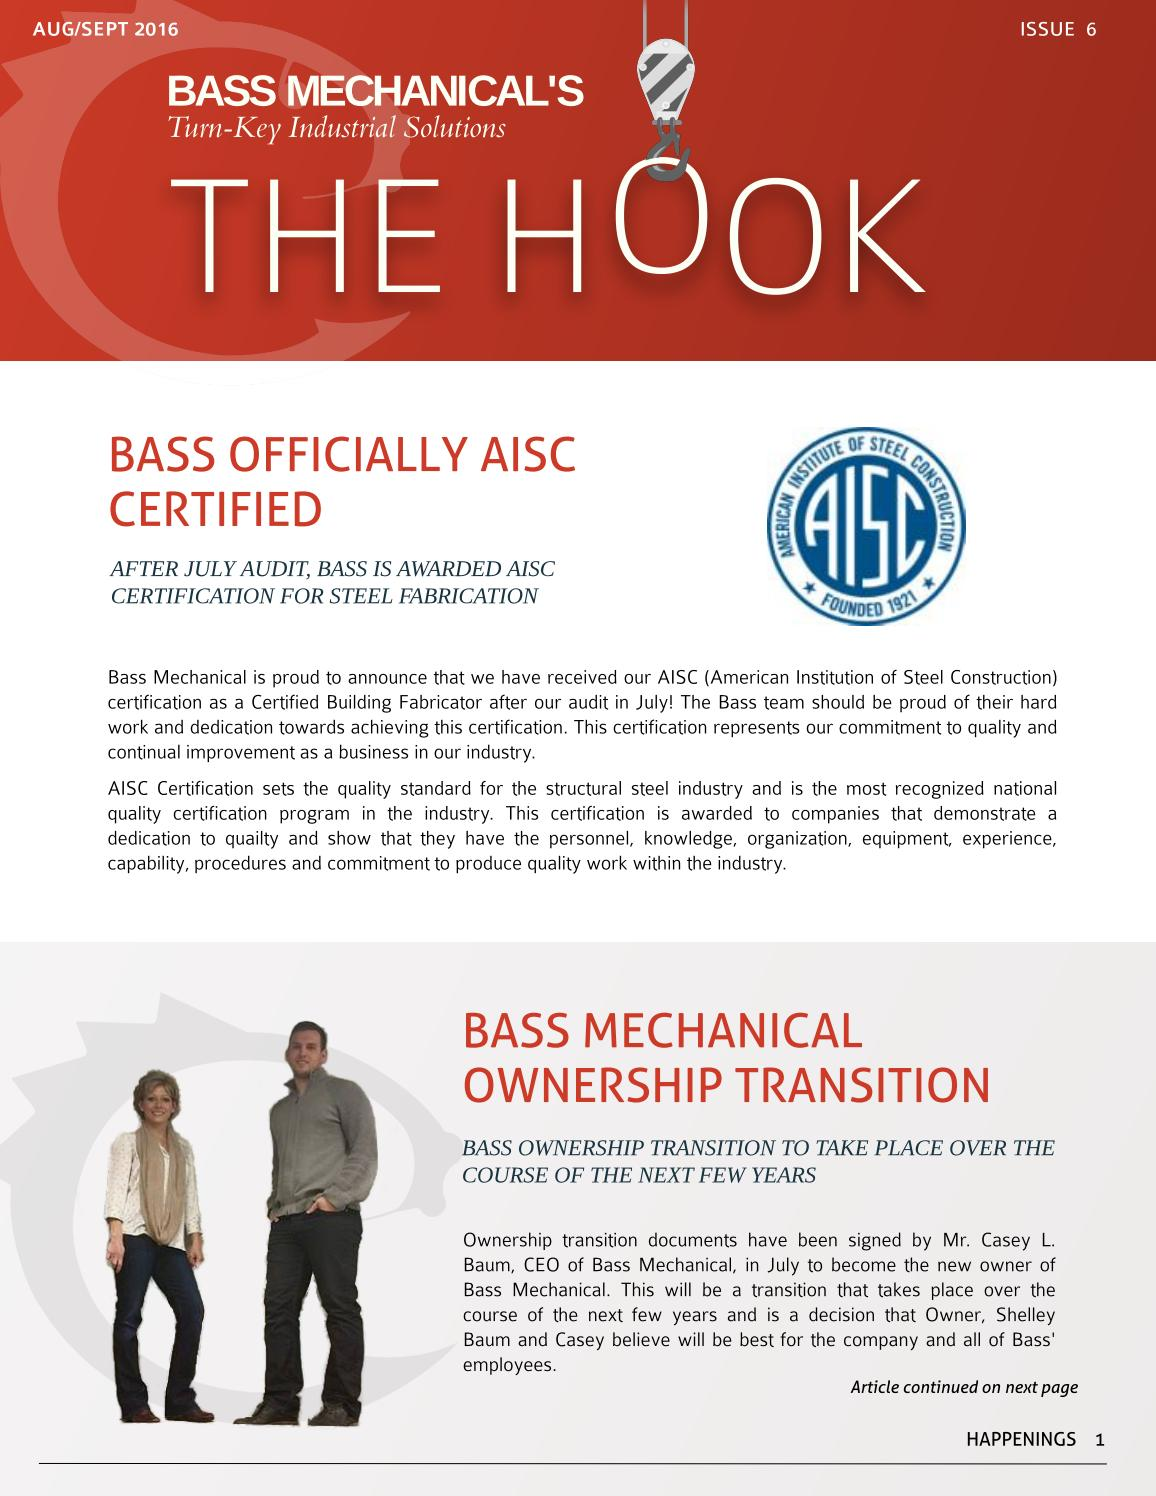 The Hook Augsept Issue By Bass Mechanical Inc Issuu